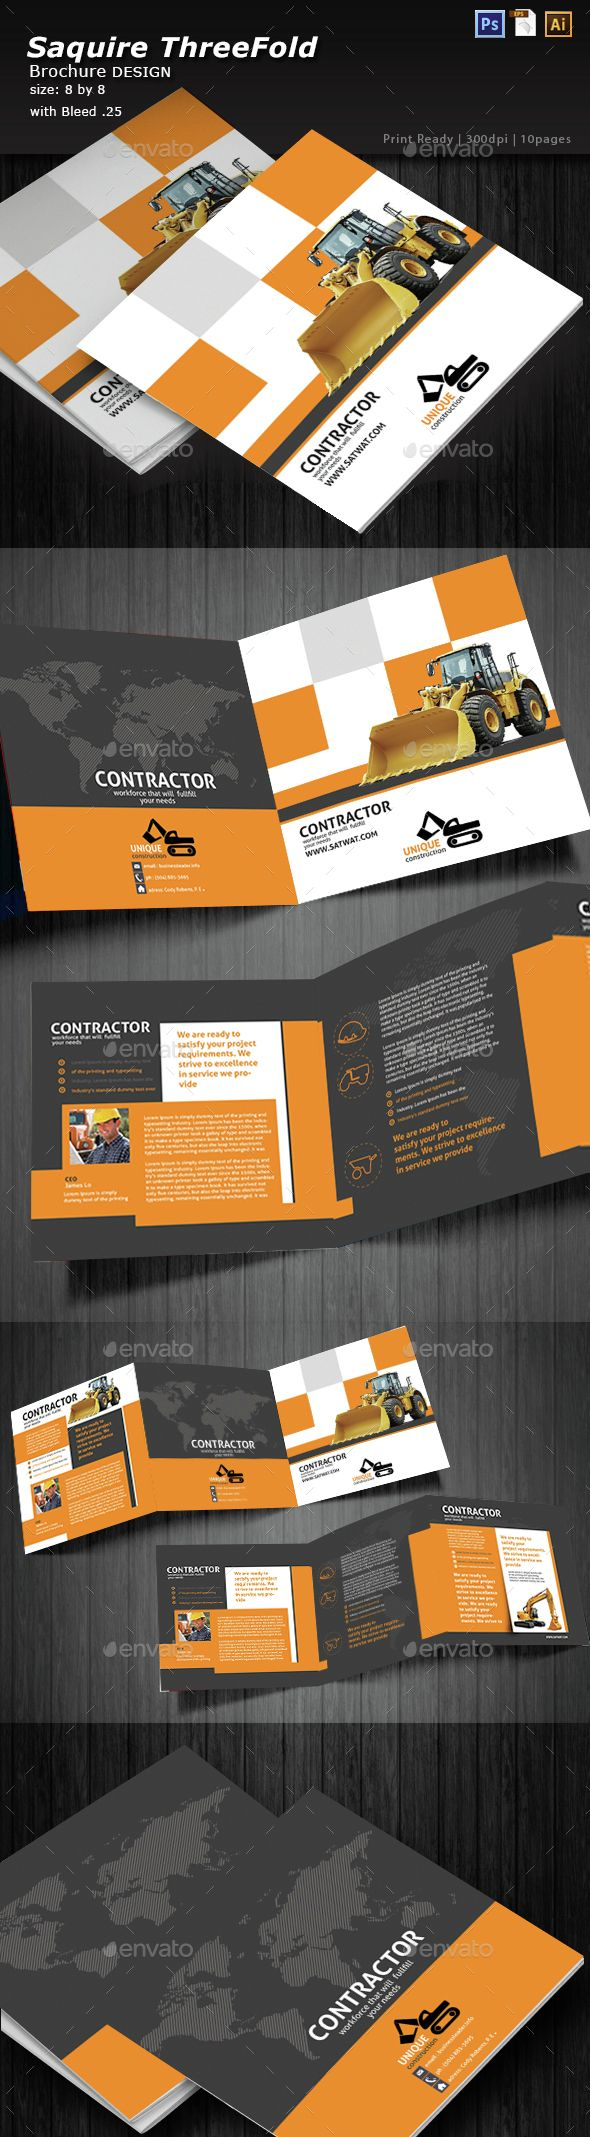 Construction TriFold Square Brochure  Brochures Tri Fold And